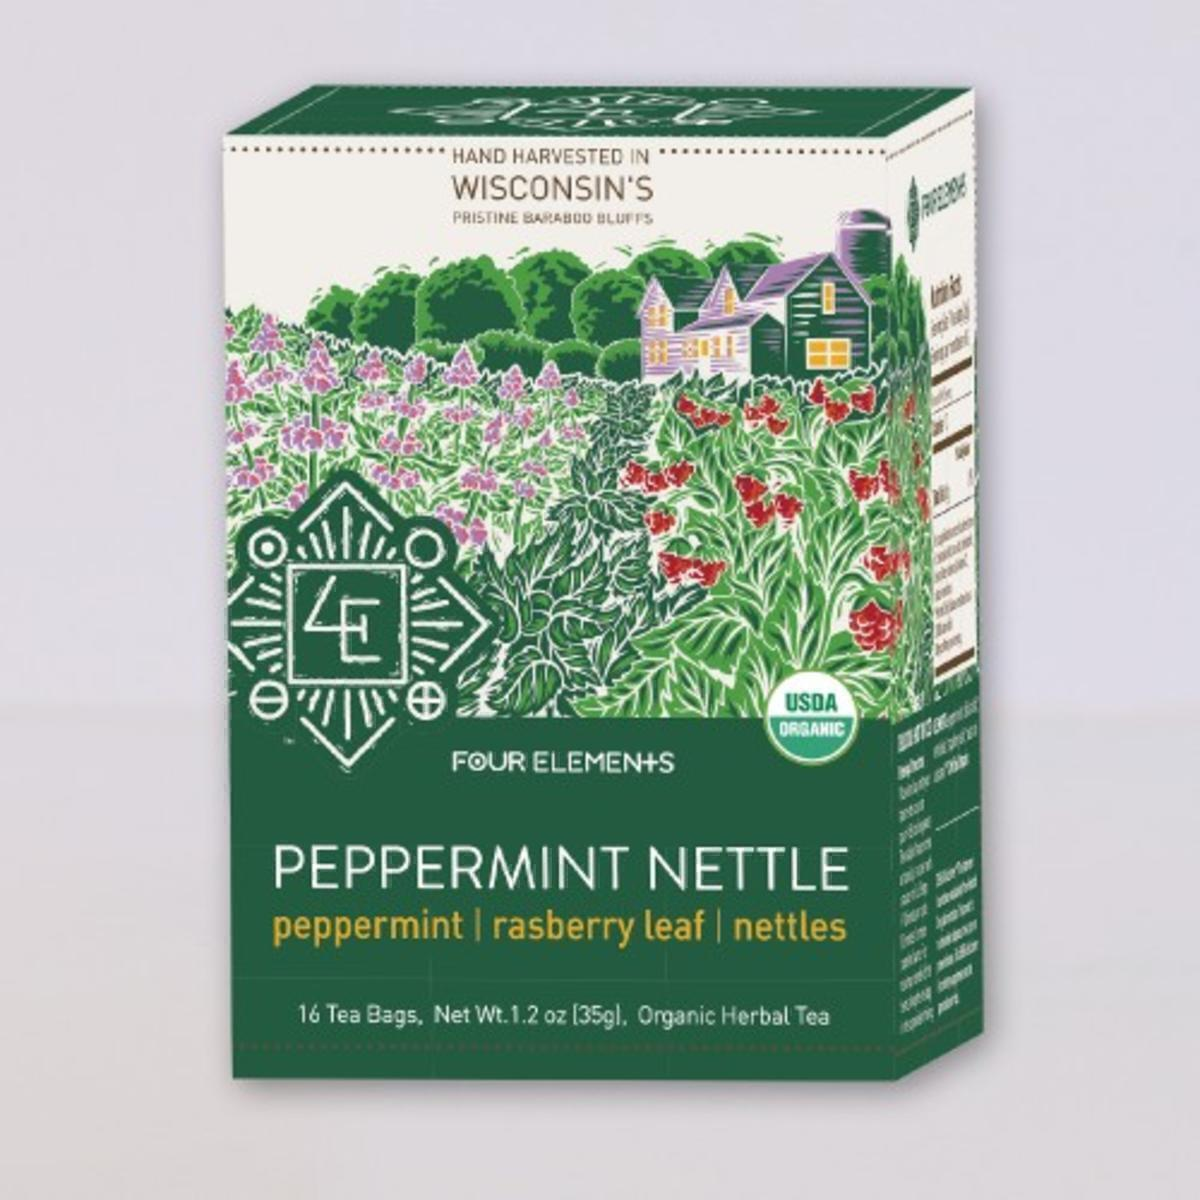 Four Elements Peppermint Nettle Tea